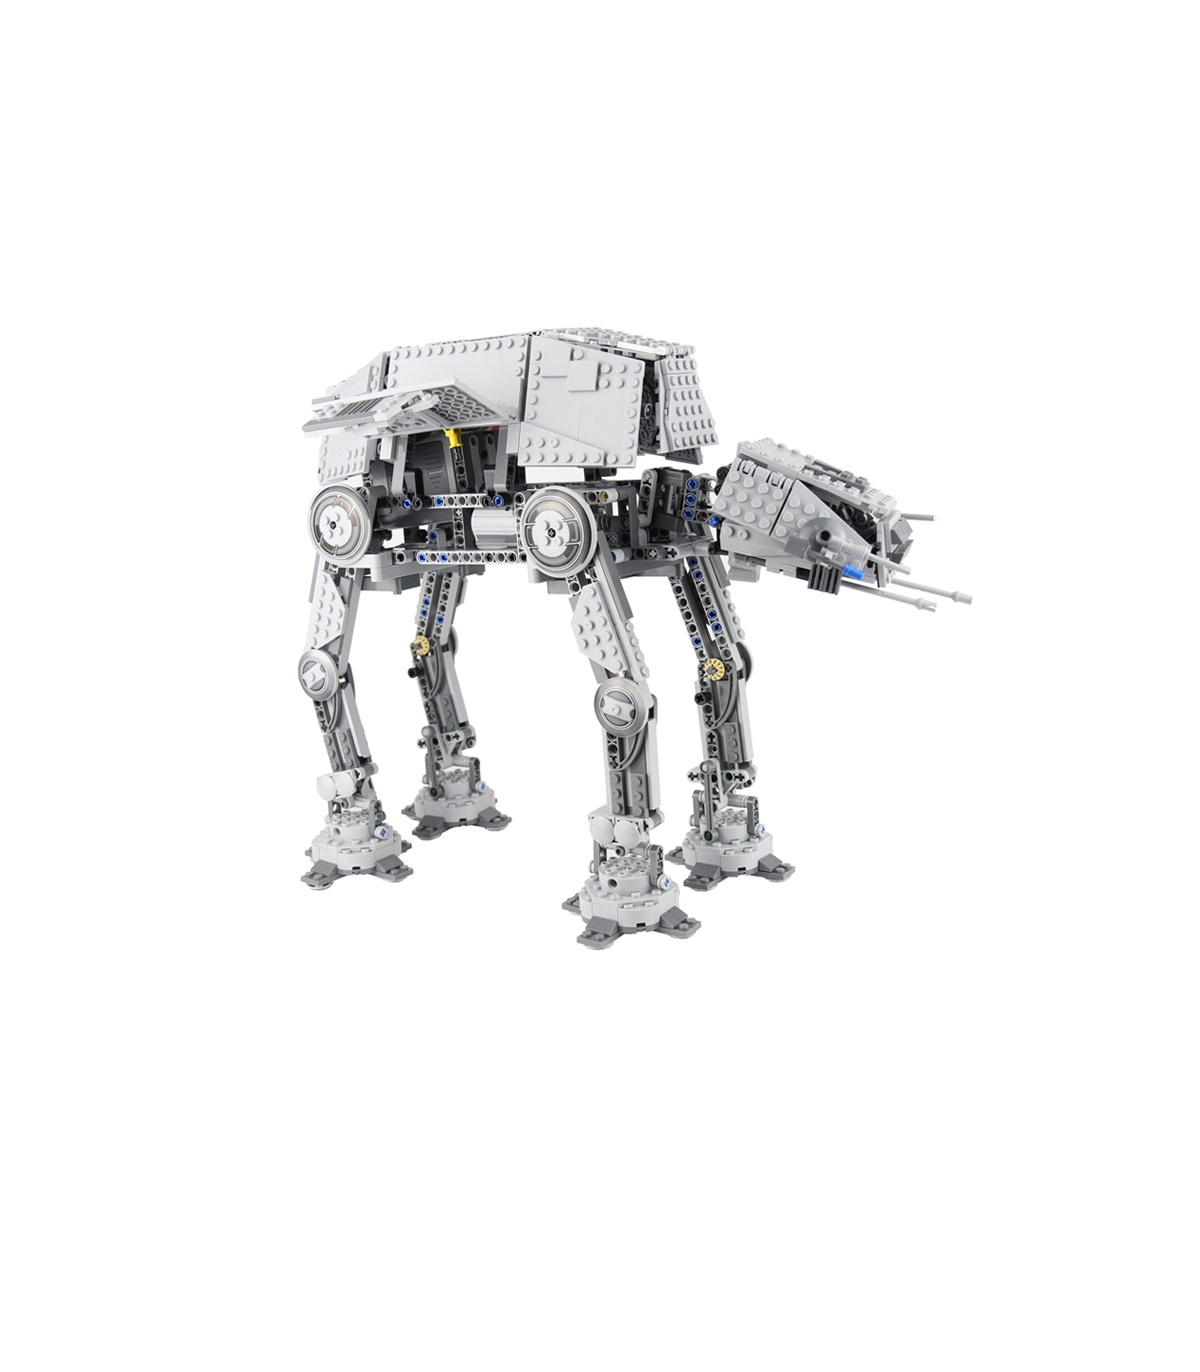 Custom Motorised Walking AT-AT Star Wars Compatible Building Bricks Toy Set 1137 Pieces